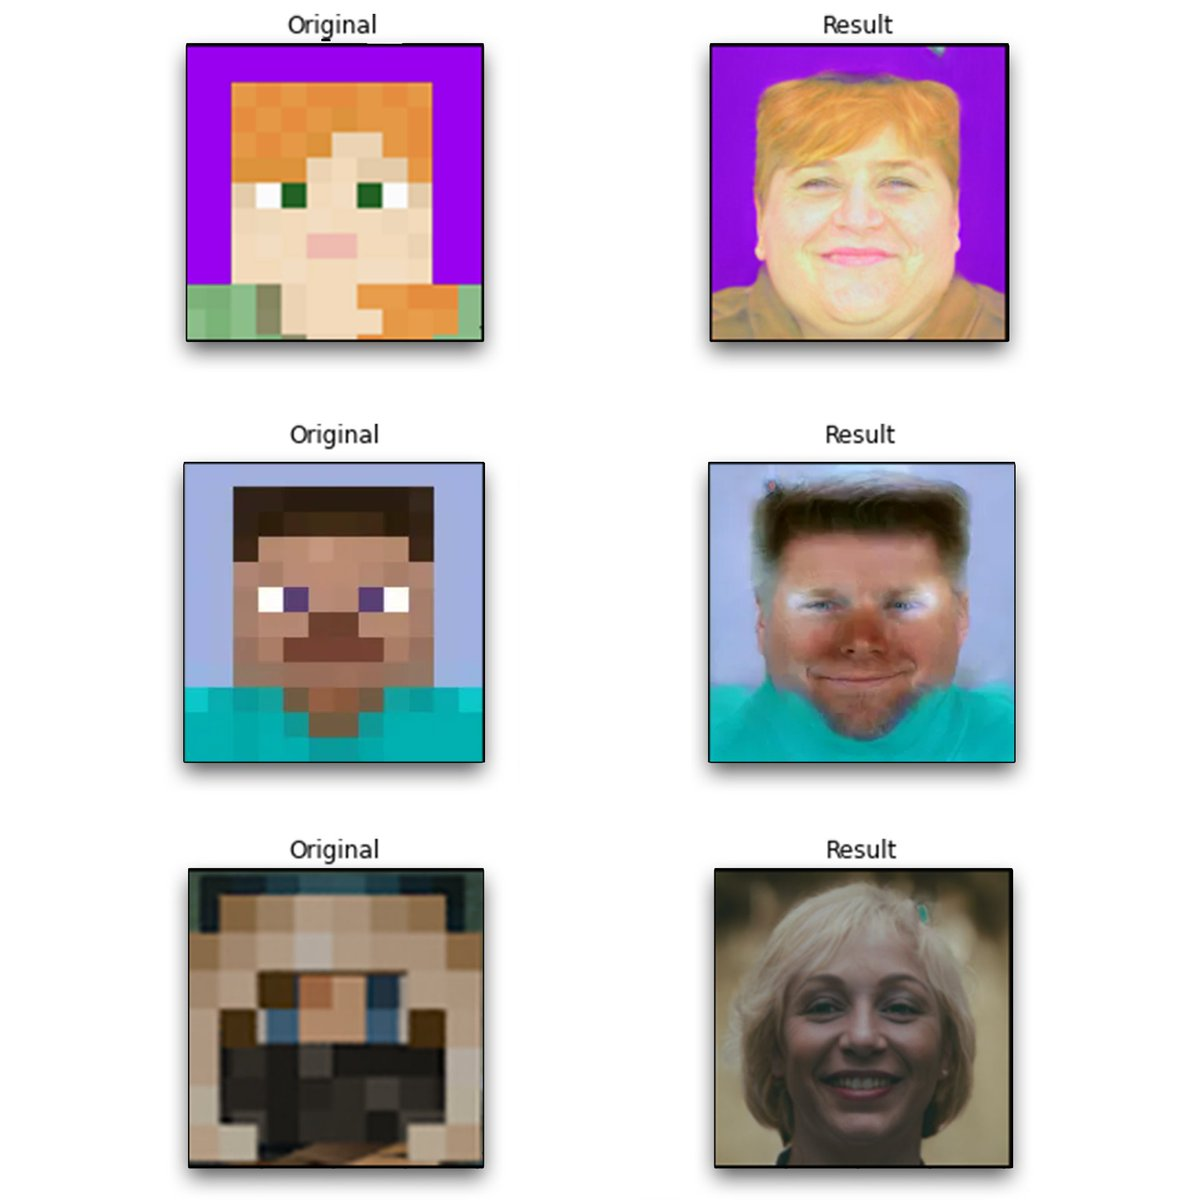 We've recently found out about this incredible tool that does it's best to depixelate images. We decided to see what Doug would like using this tool. Here's our result    You can read more about it Here:  https://kotaku.com/depixelizing-video-game-characters-creates-monsters-1844105193… #Minecraft #MinecraftMeme pic.twitter.com/MACXAcozsB